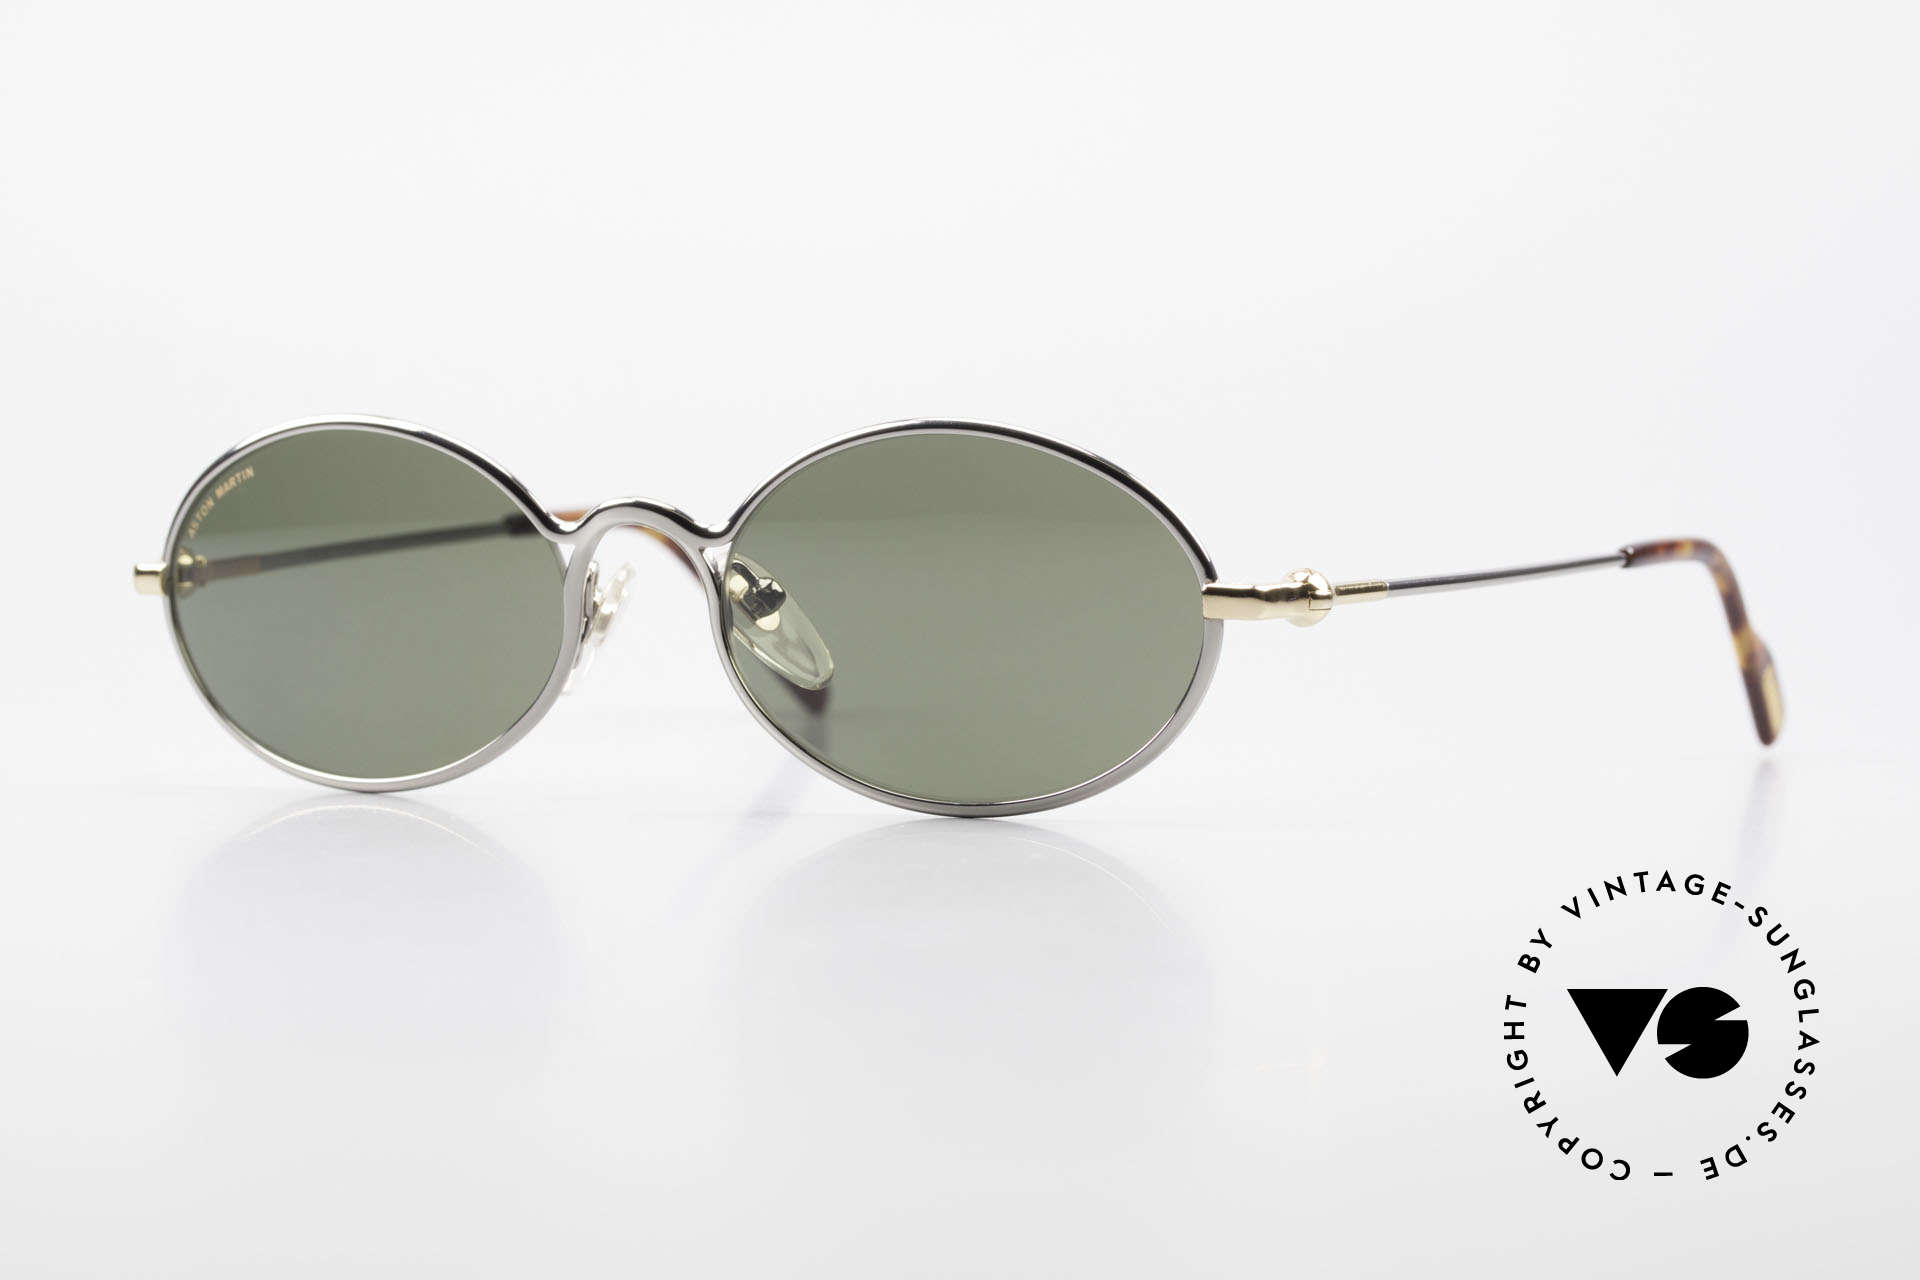 Aston Martin AM13 Oval Shades James Bond Style, Aston Martin vintage luxury designer sunglasses, 52°17, Made for Men